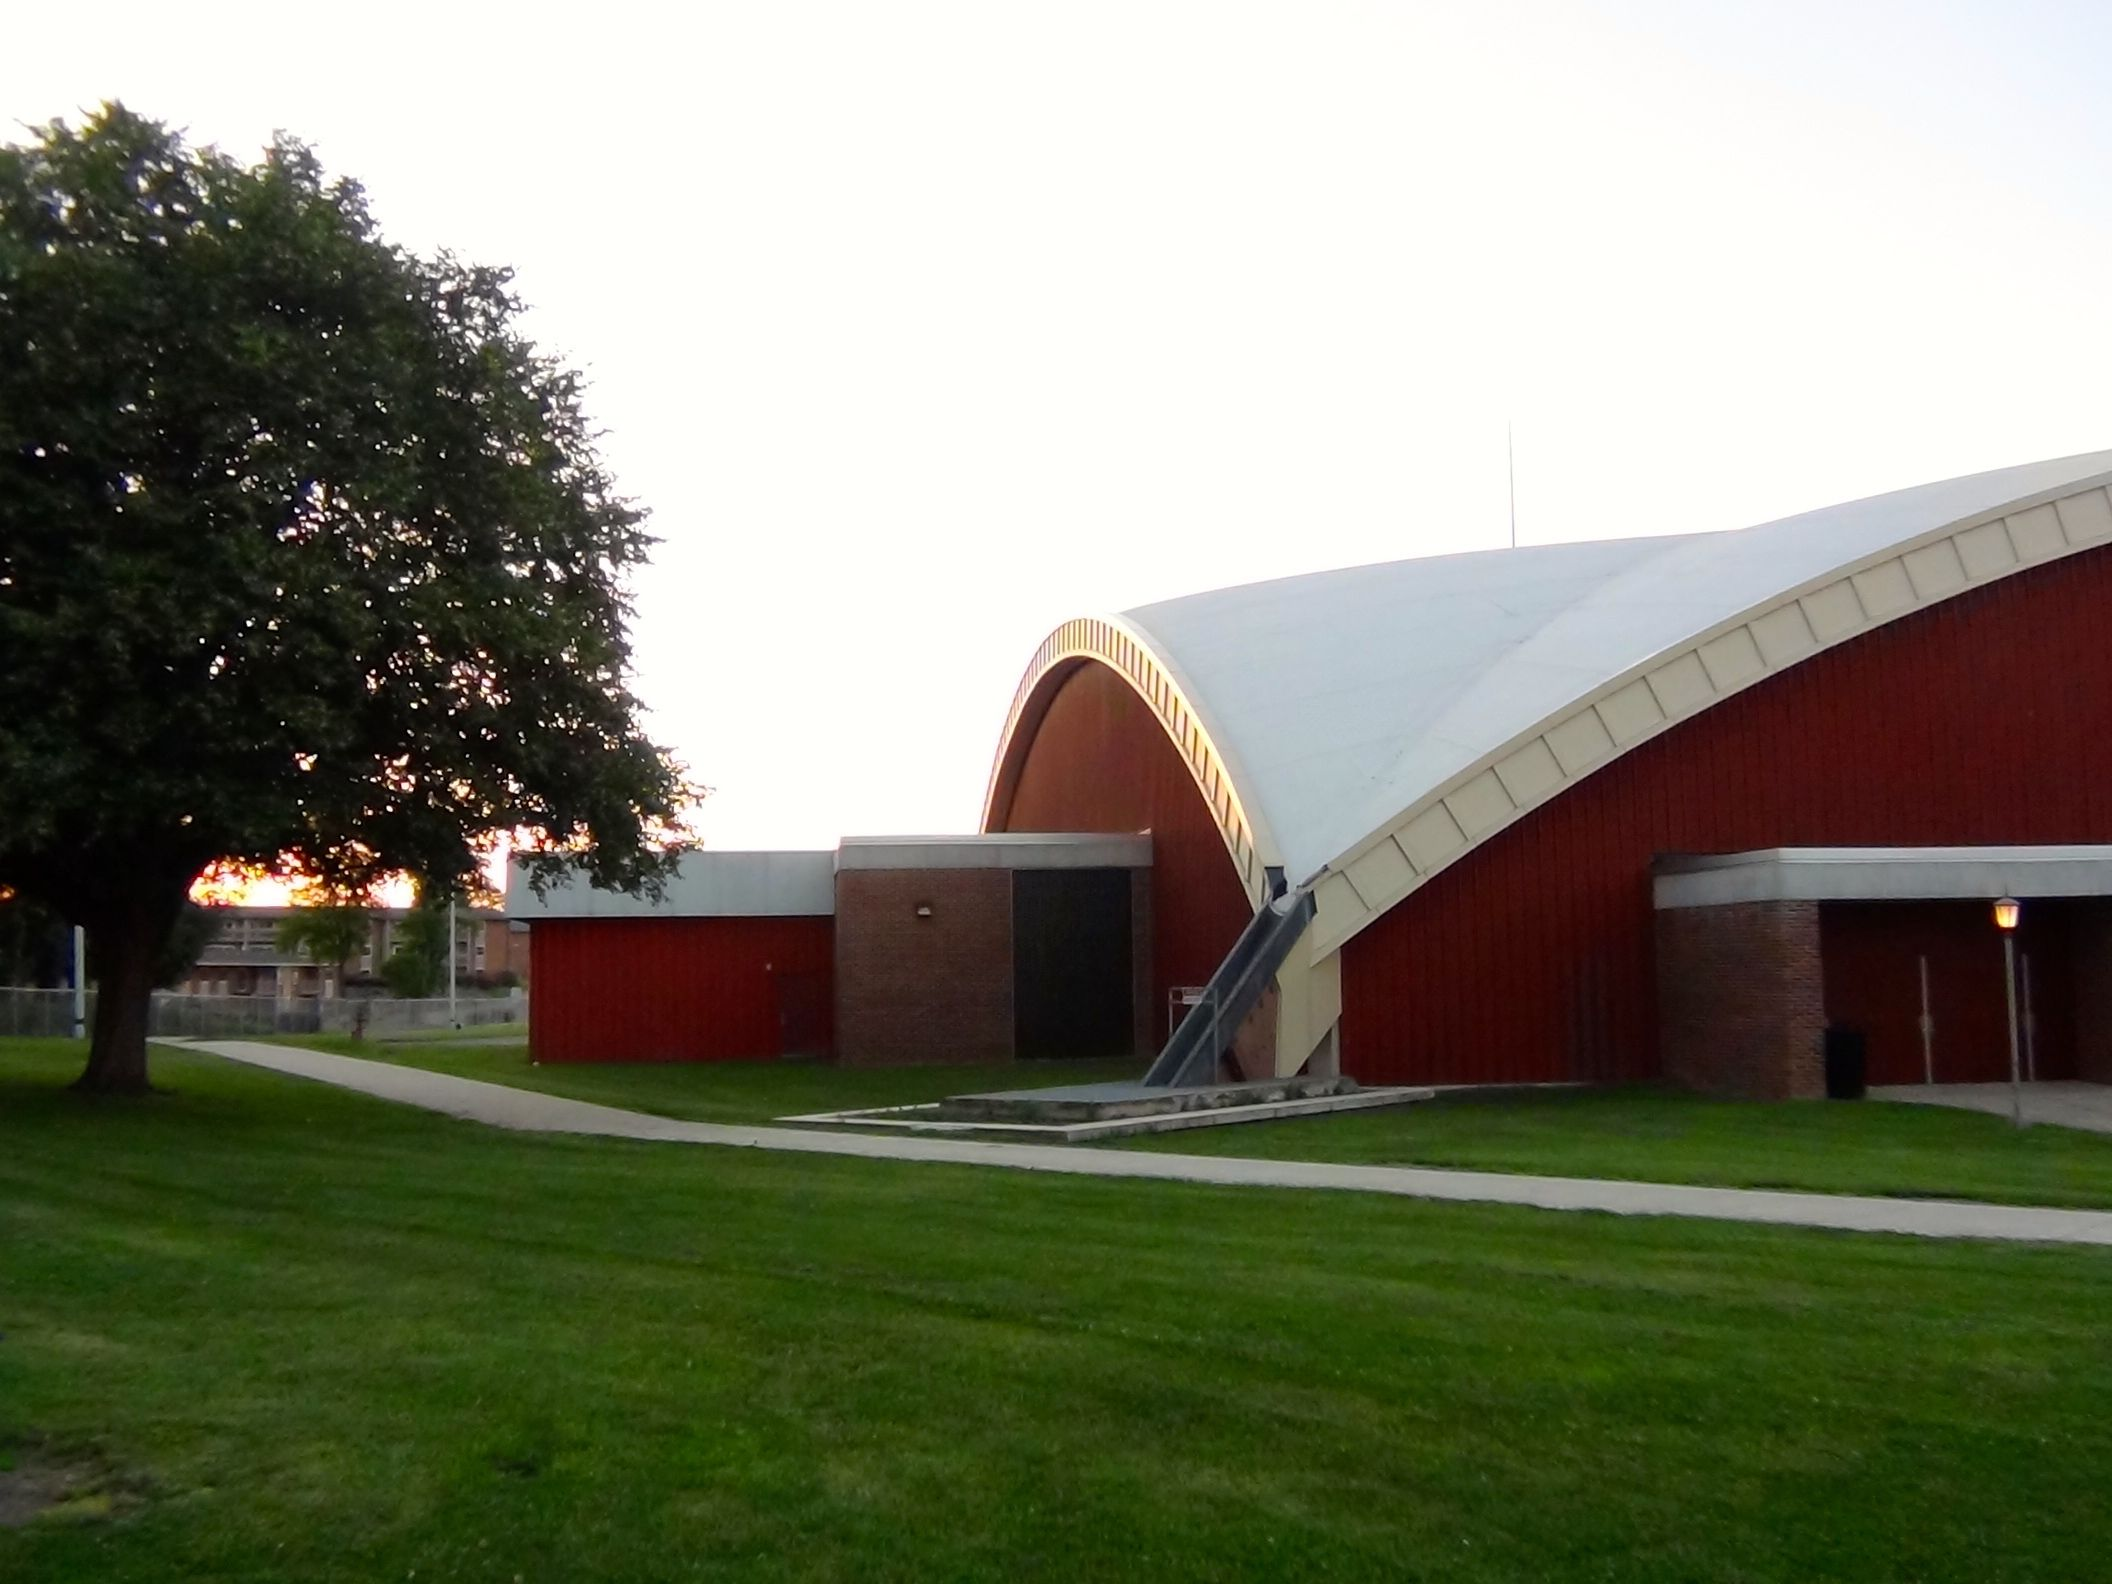 Heiges Field House Is The White Dome Shaped Roof Home To Our Ship Raider Volleyball And Basketball Teams University Campus Shippensburg University Building